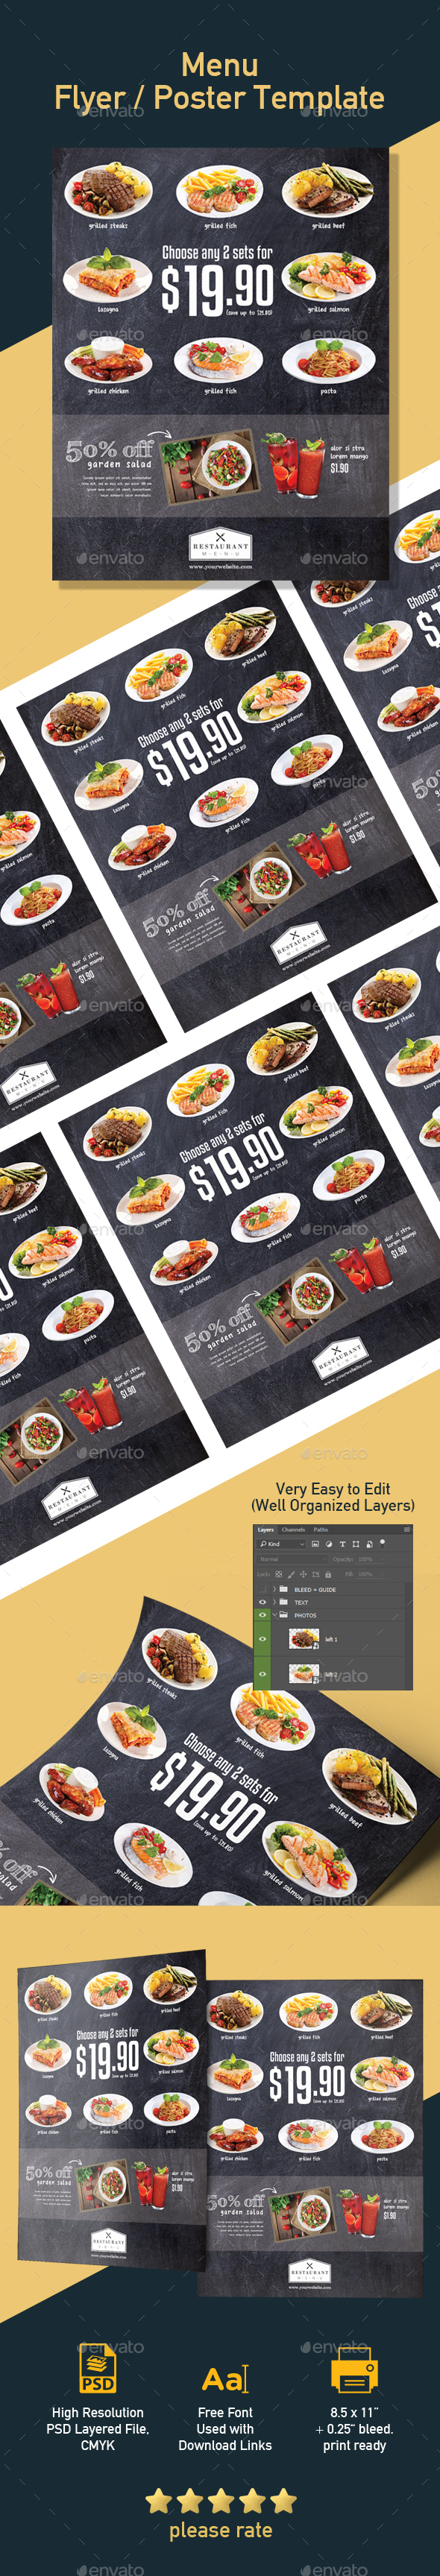 Restaurant Template for Promotion Poster / Flyer - Restaurant Flyers